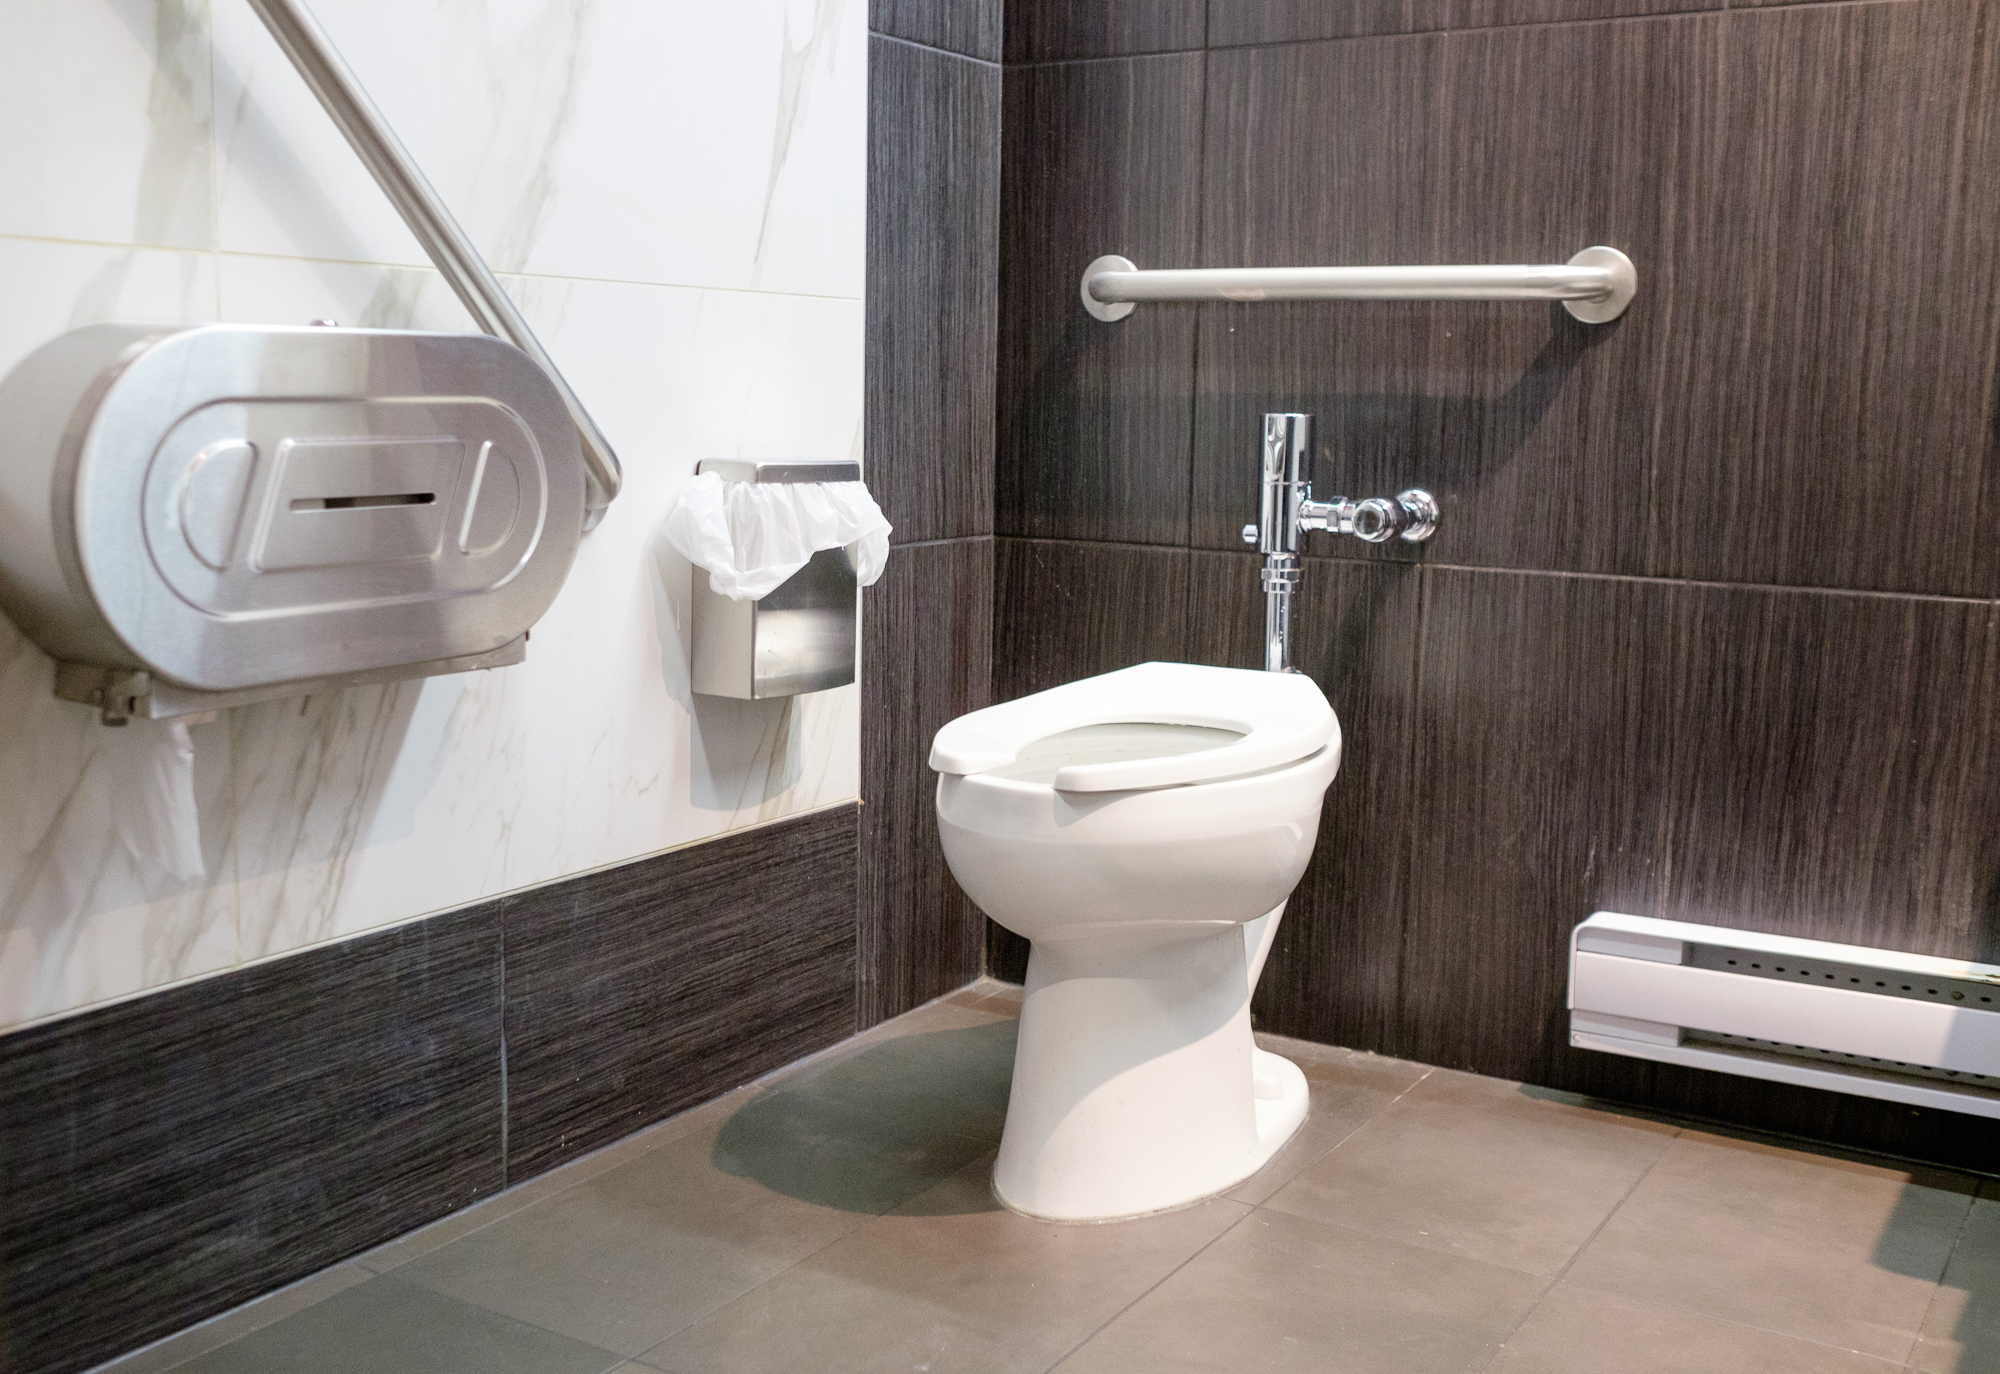 Picture of accessible washroom with grab bars